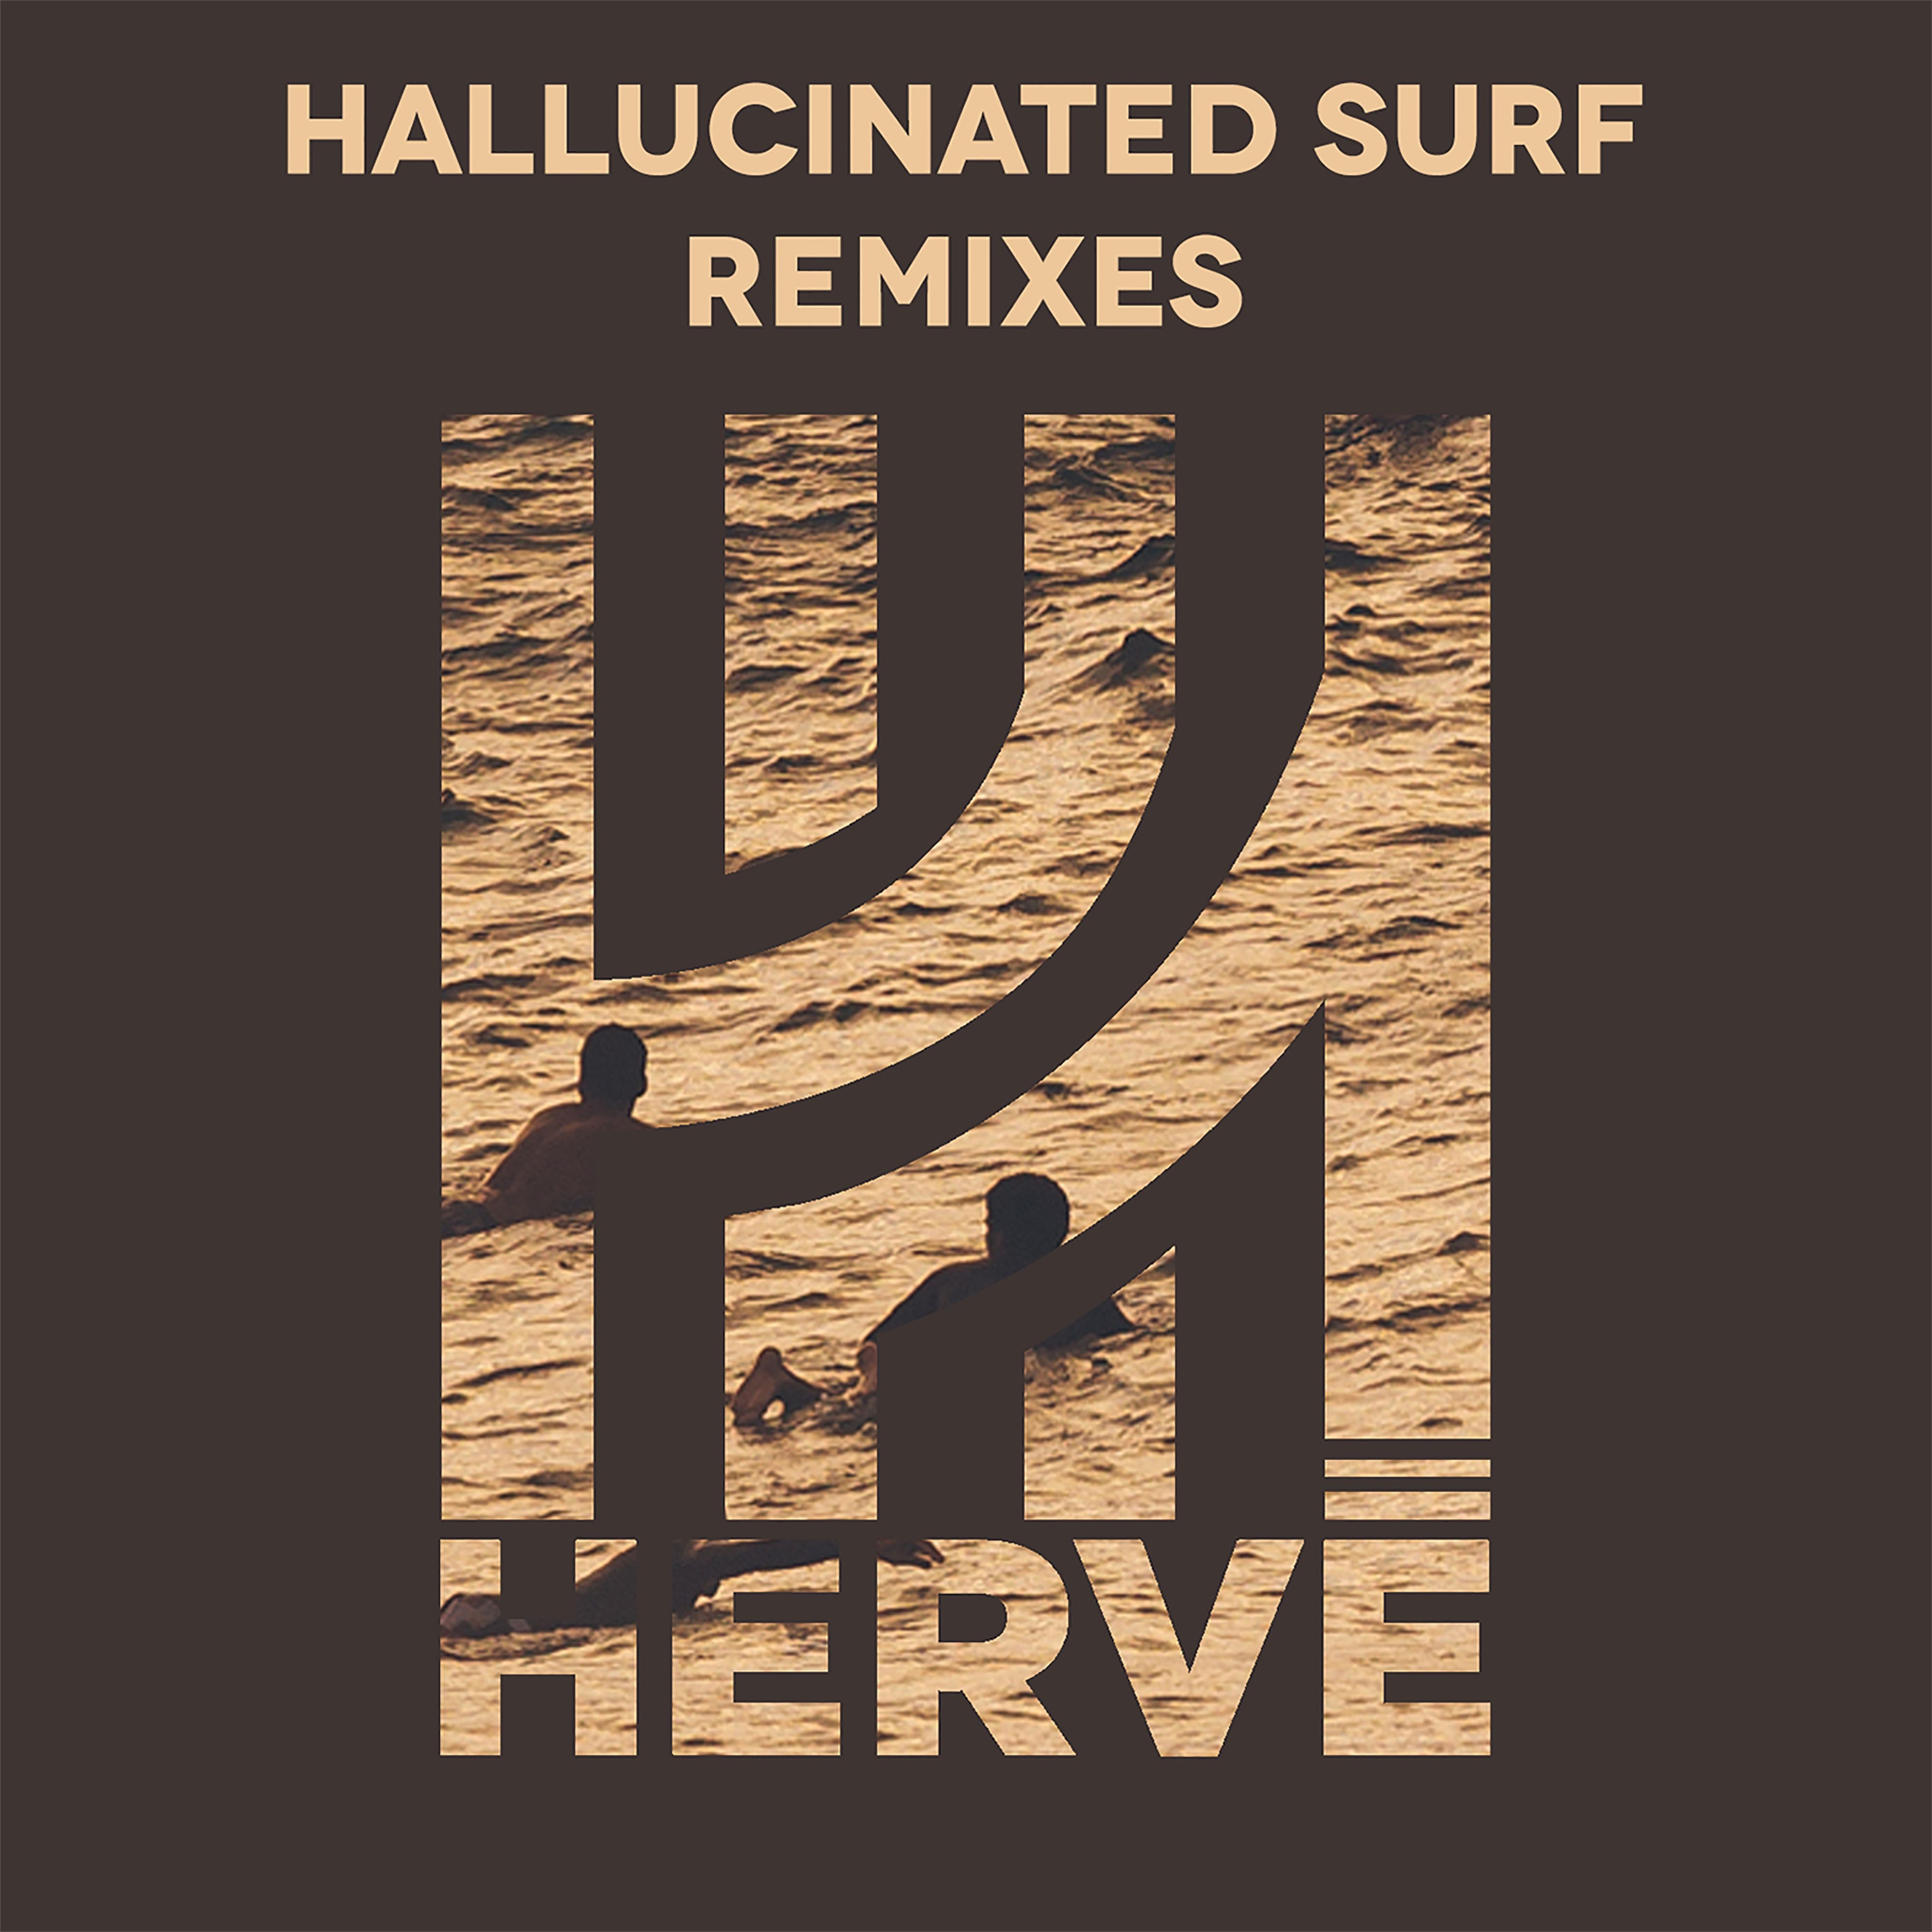 Hallucinated Surf (Remixes) - Single